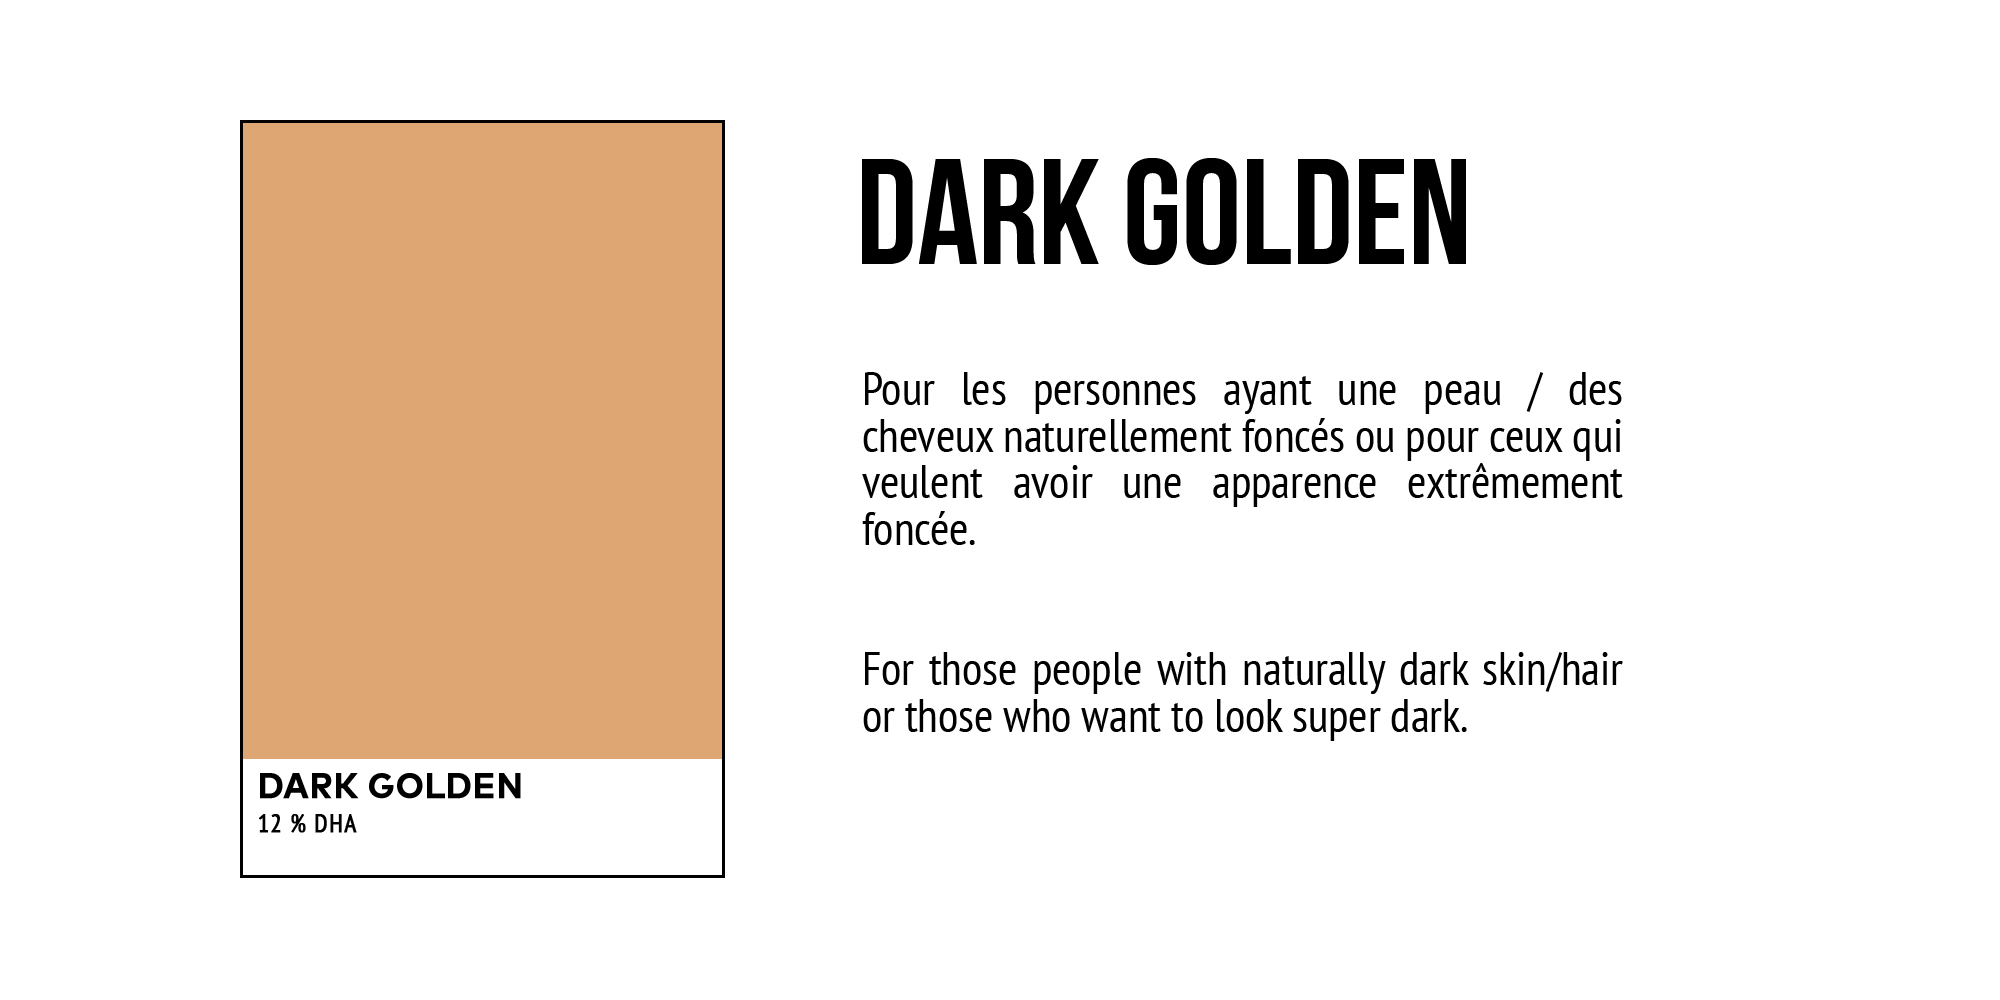 4 DARK GOLDEN DESCRIPTION  copie.jpg